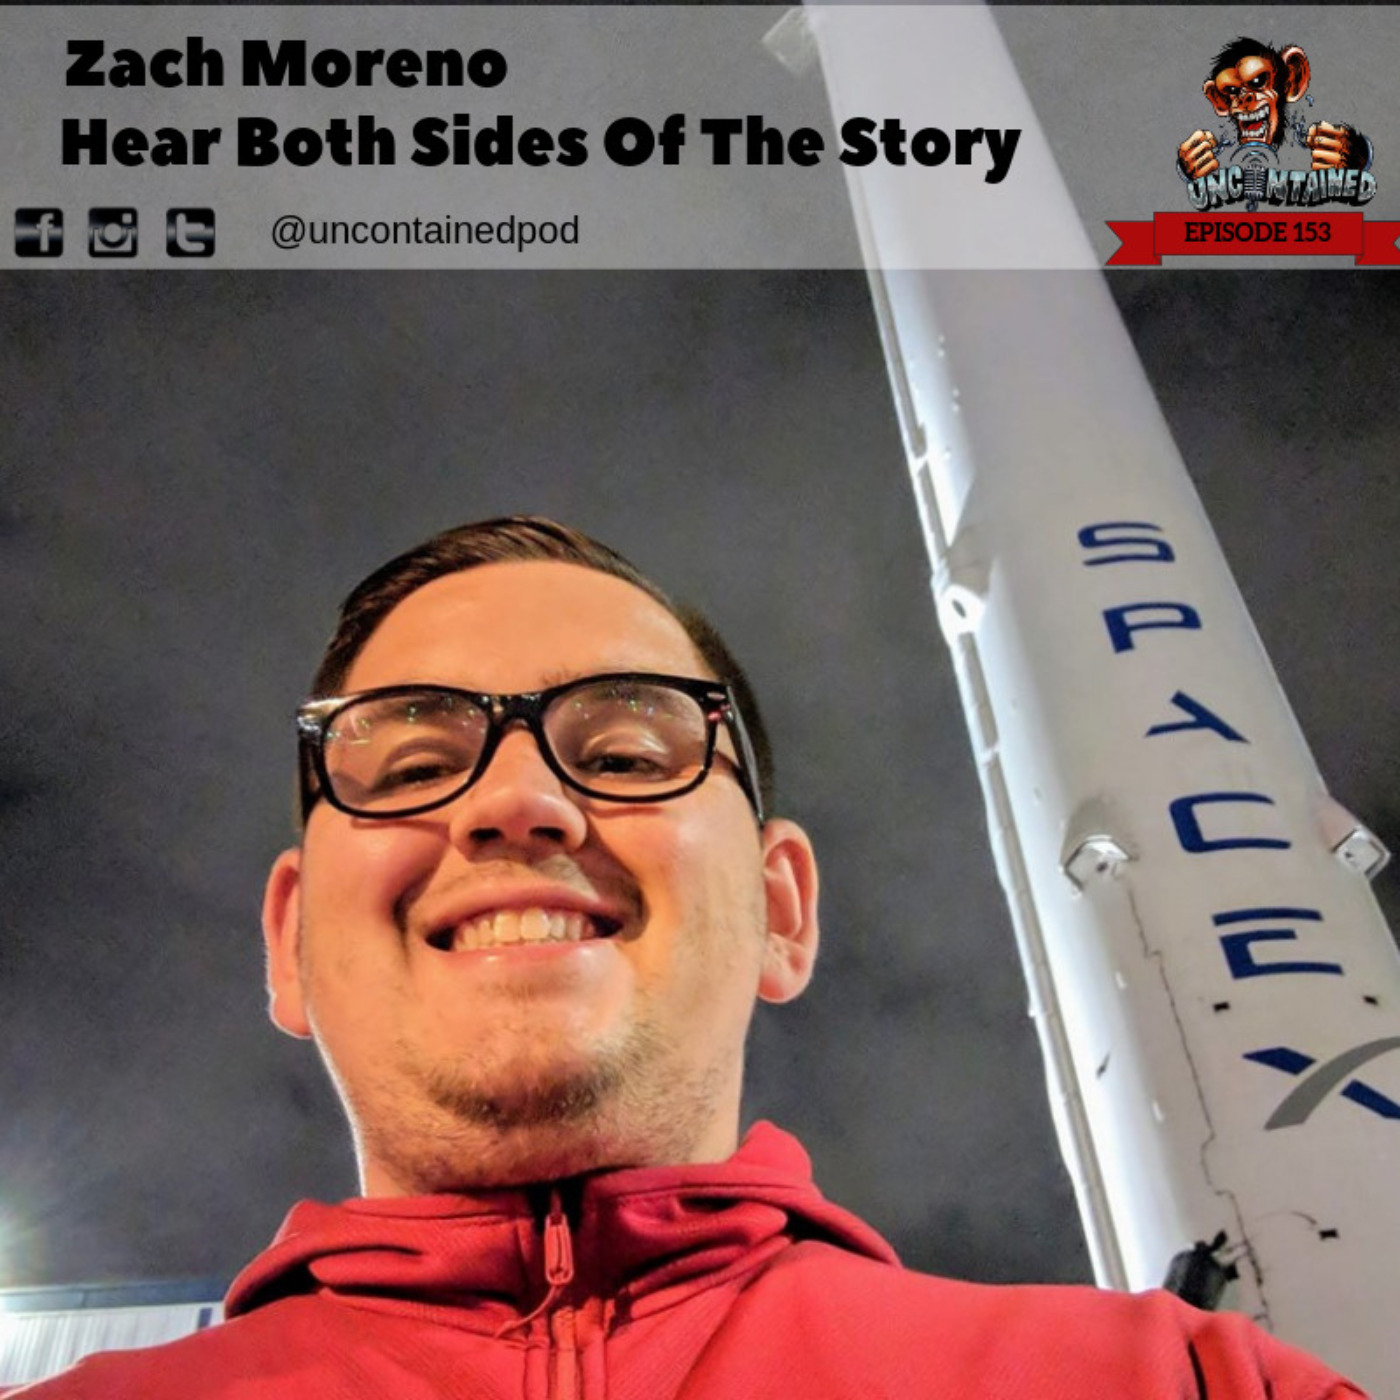 Episode 153: Zach Moreno - Hear Both Sides Of The Story